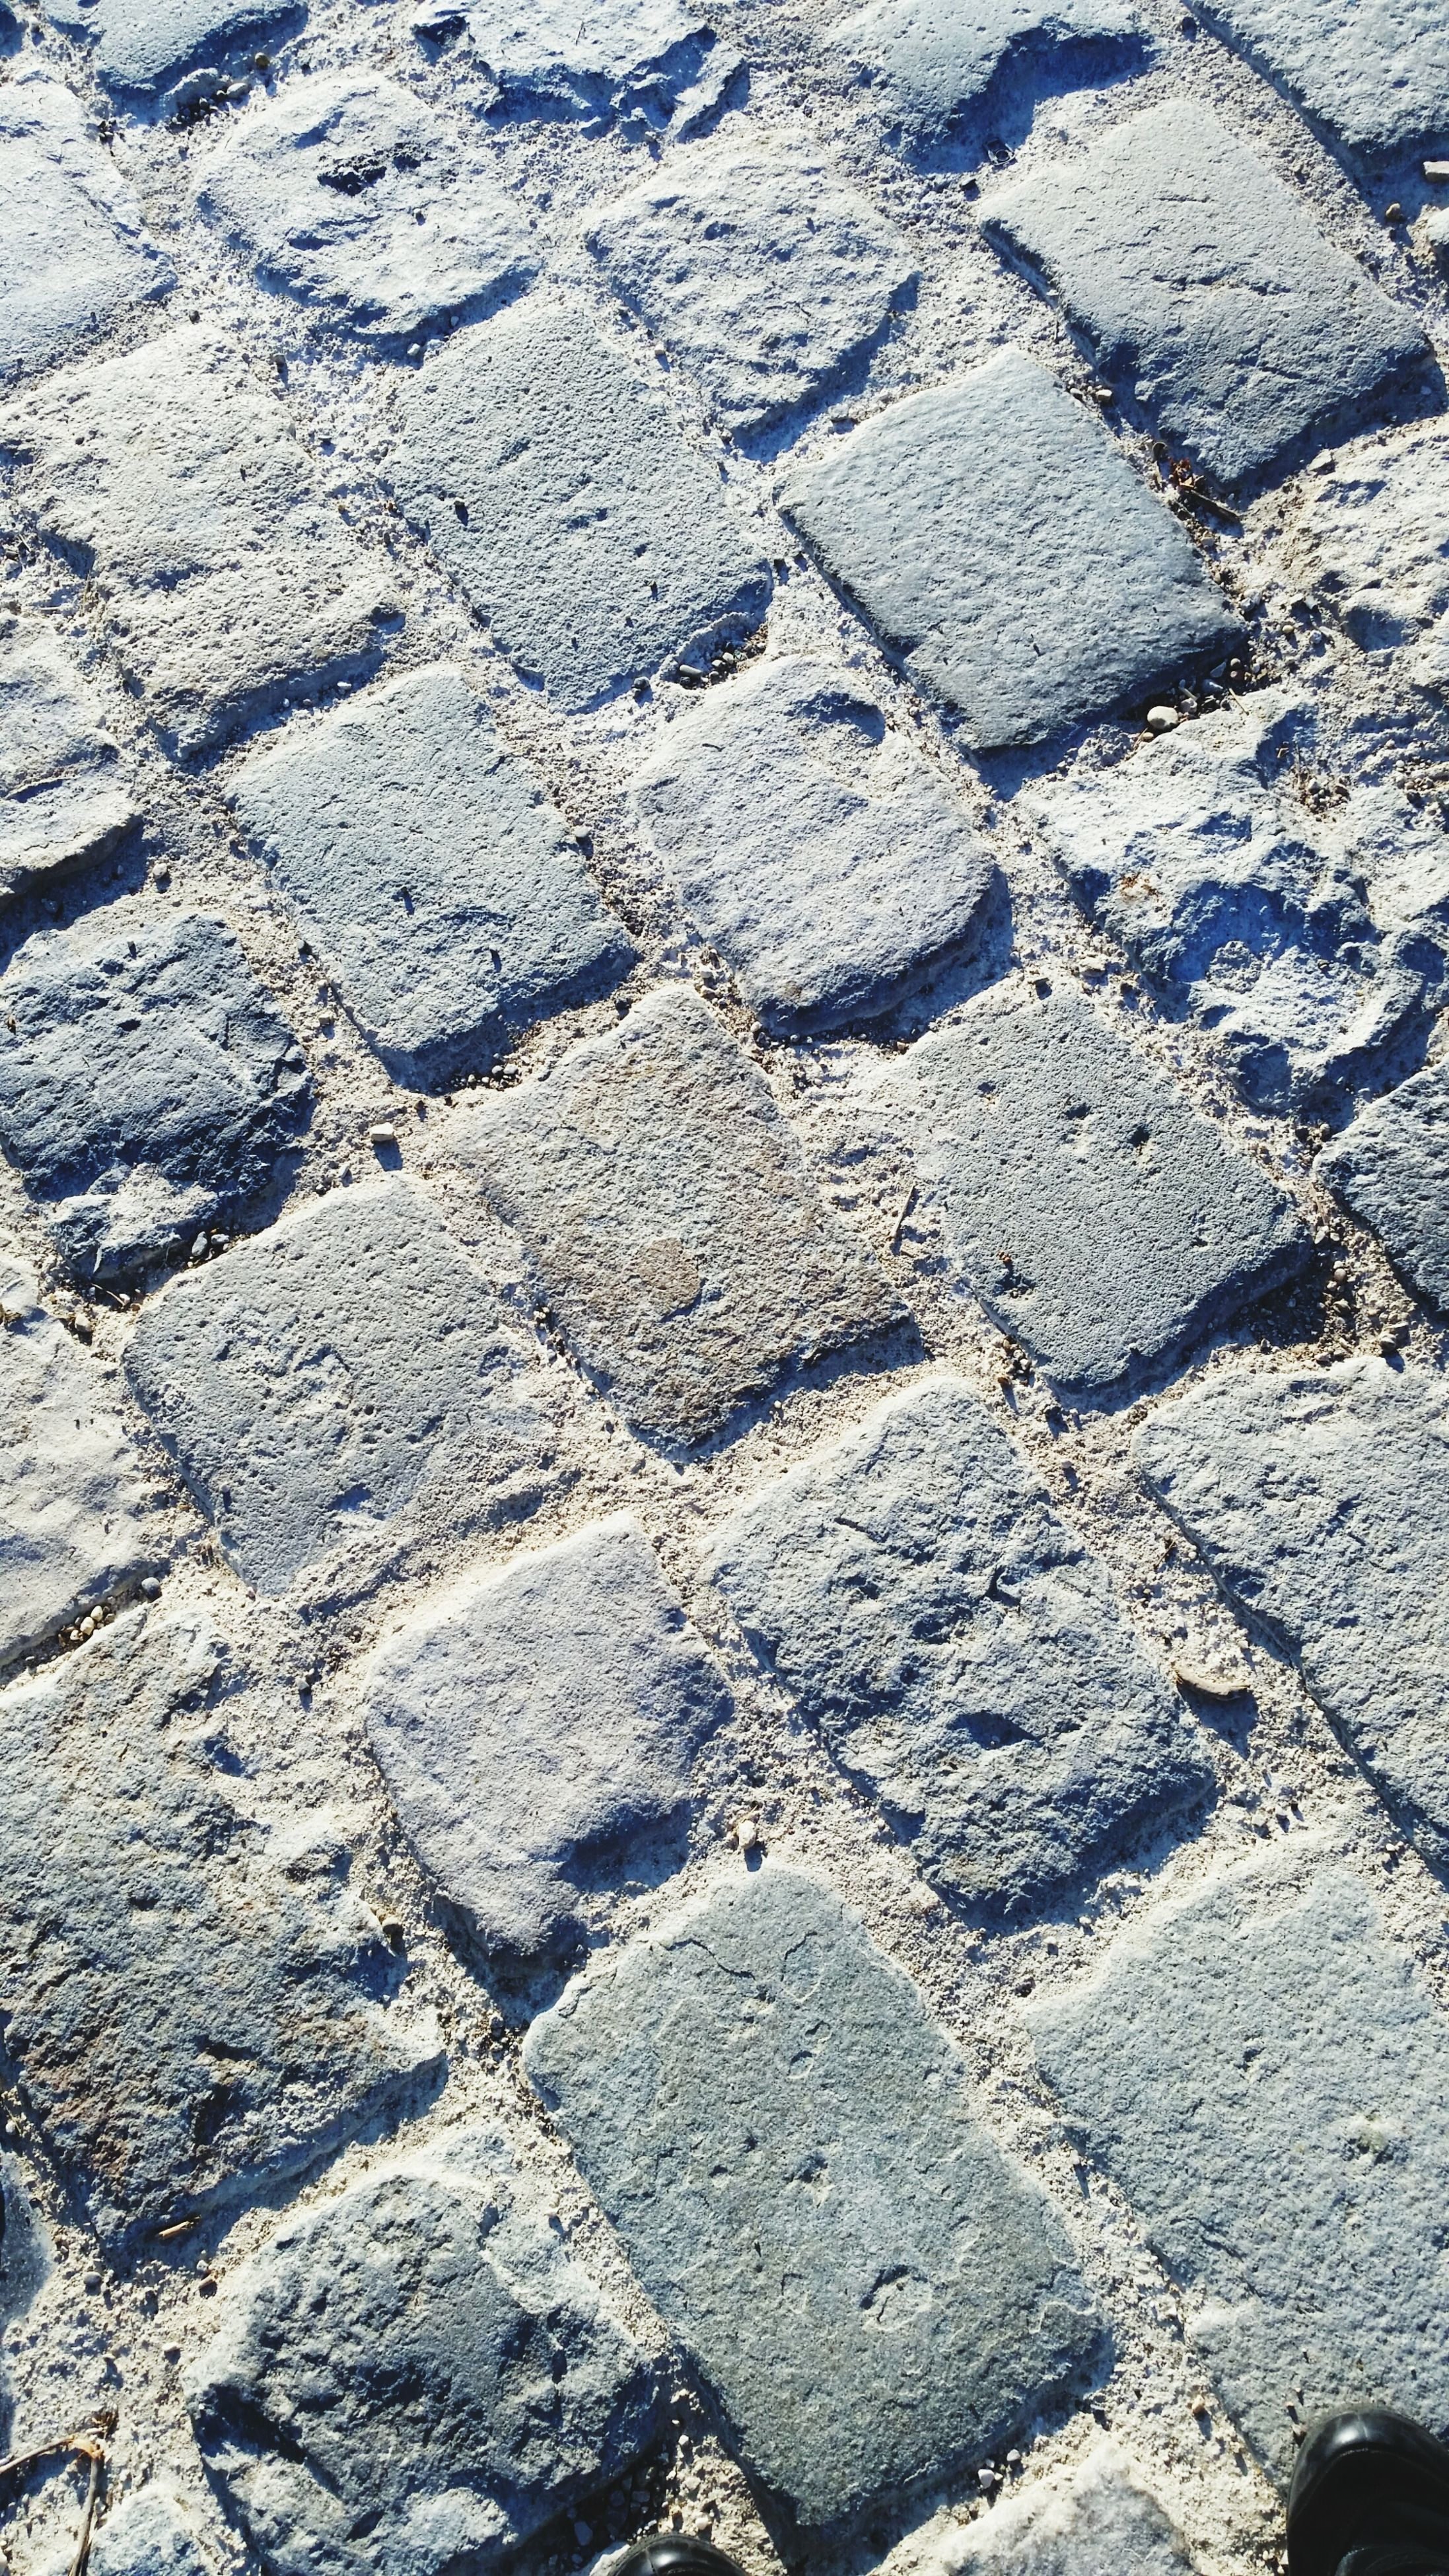 full frame, backgrounds, textured, high angle view, street, pattern, cobblestone, day, asphalt, outdoors, sunlight, no people, rough, road, close-up, stone - object, detail, nature, footpath, elevated view